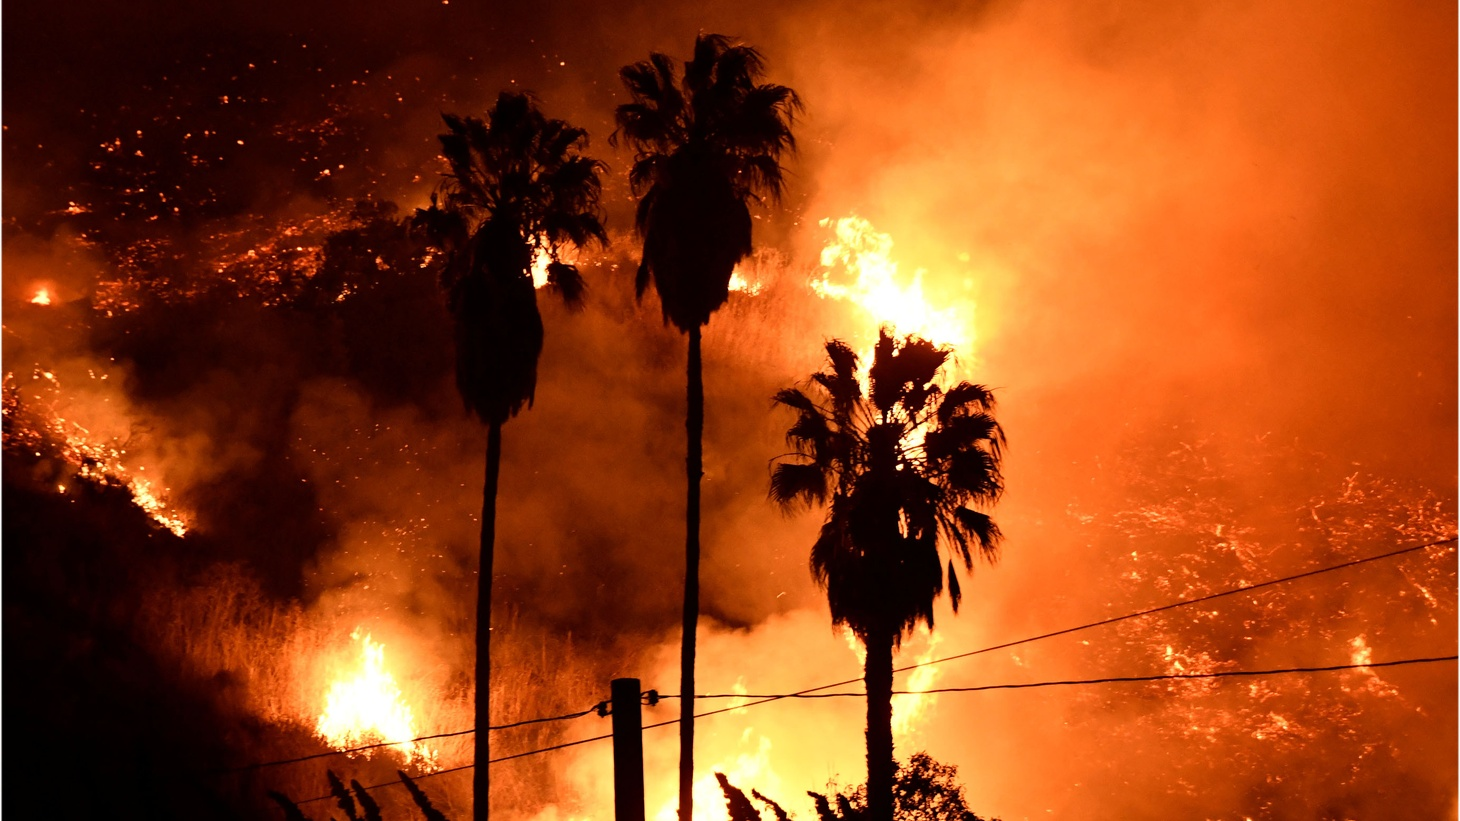 Three fires are raging out of control in Southern California: One in Ventura, one in Sylmar, and one in Santa Clarita. Tens of thousands of people are under evacuation orders.